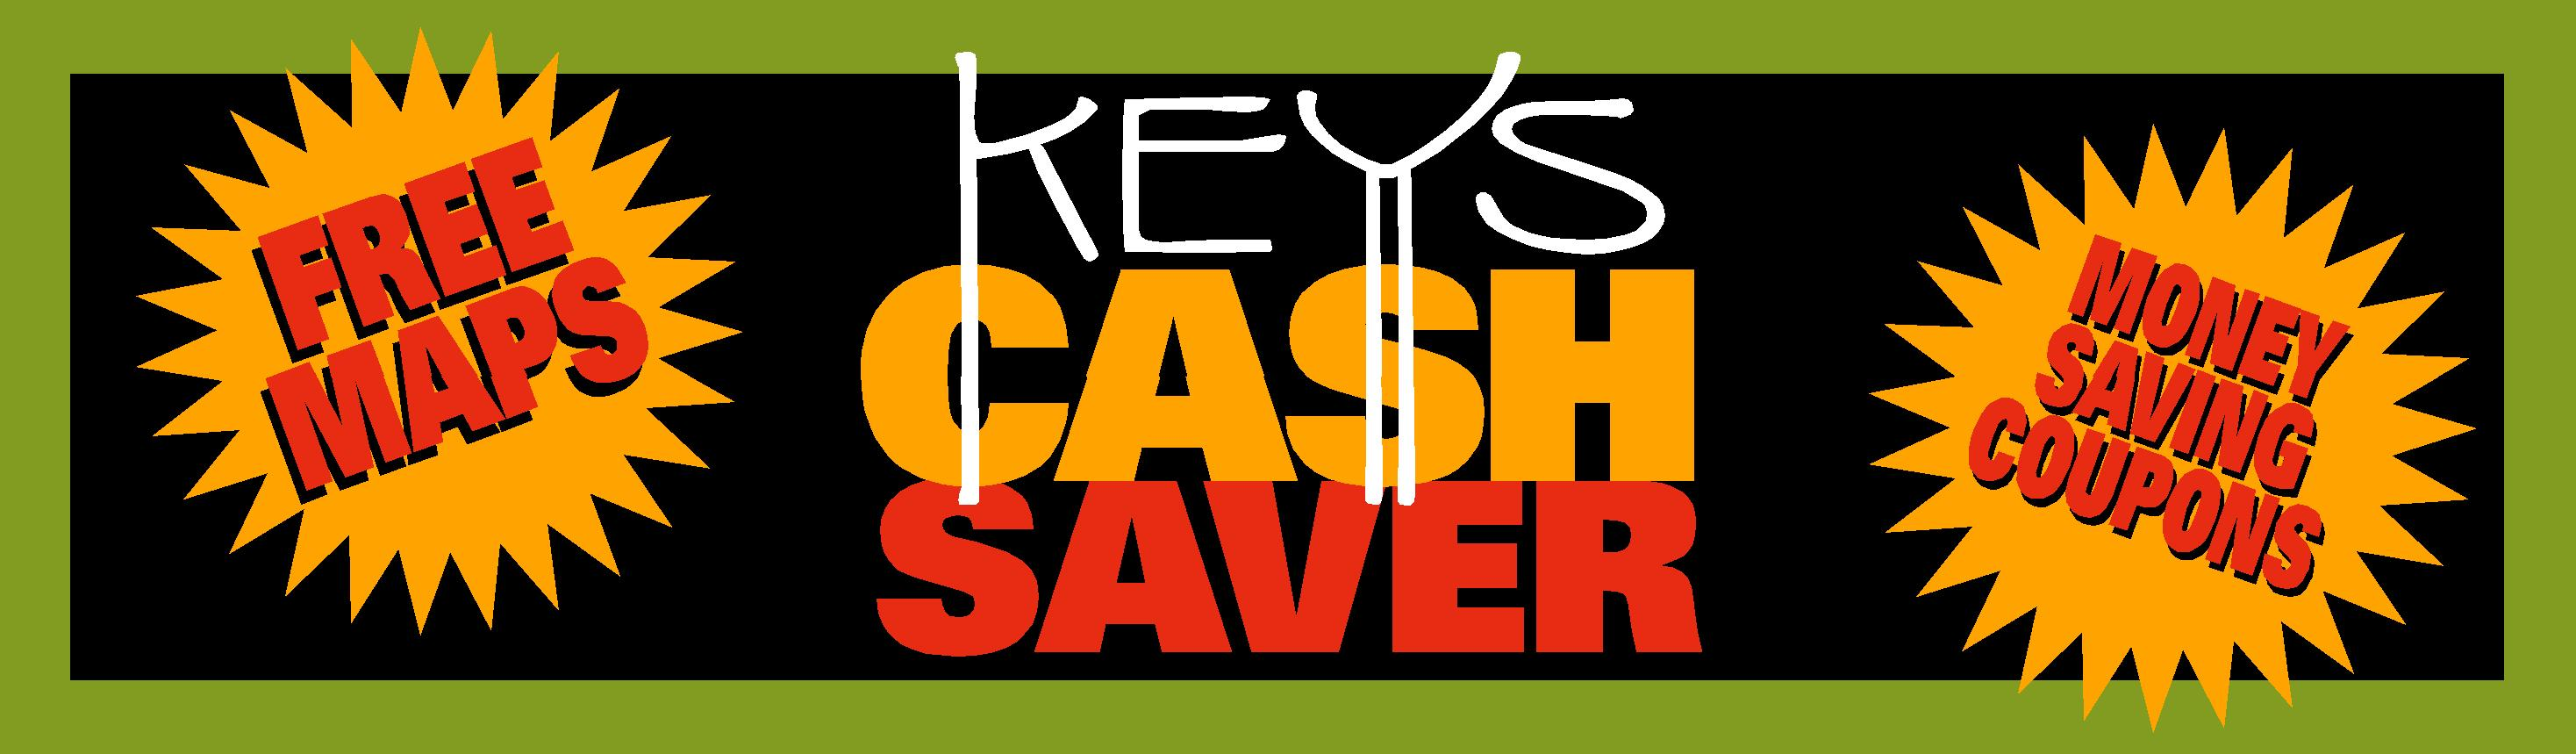 Find and print money saving coupons throughout the Florida Keys